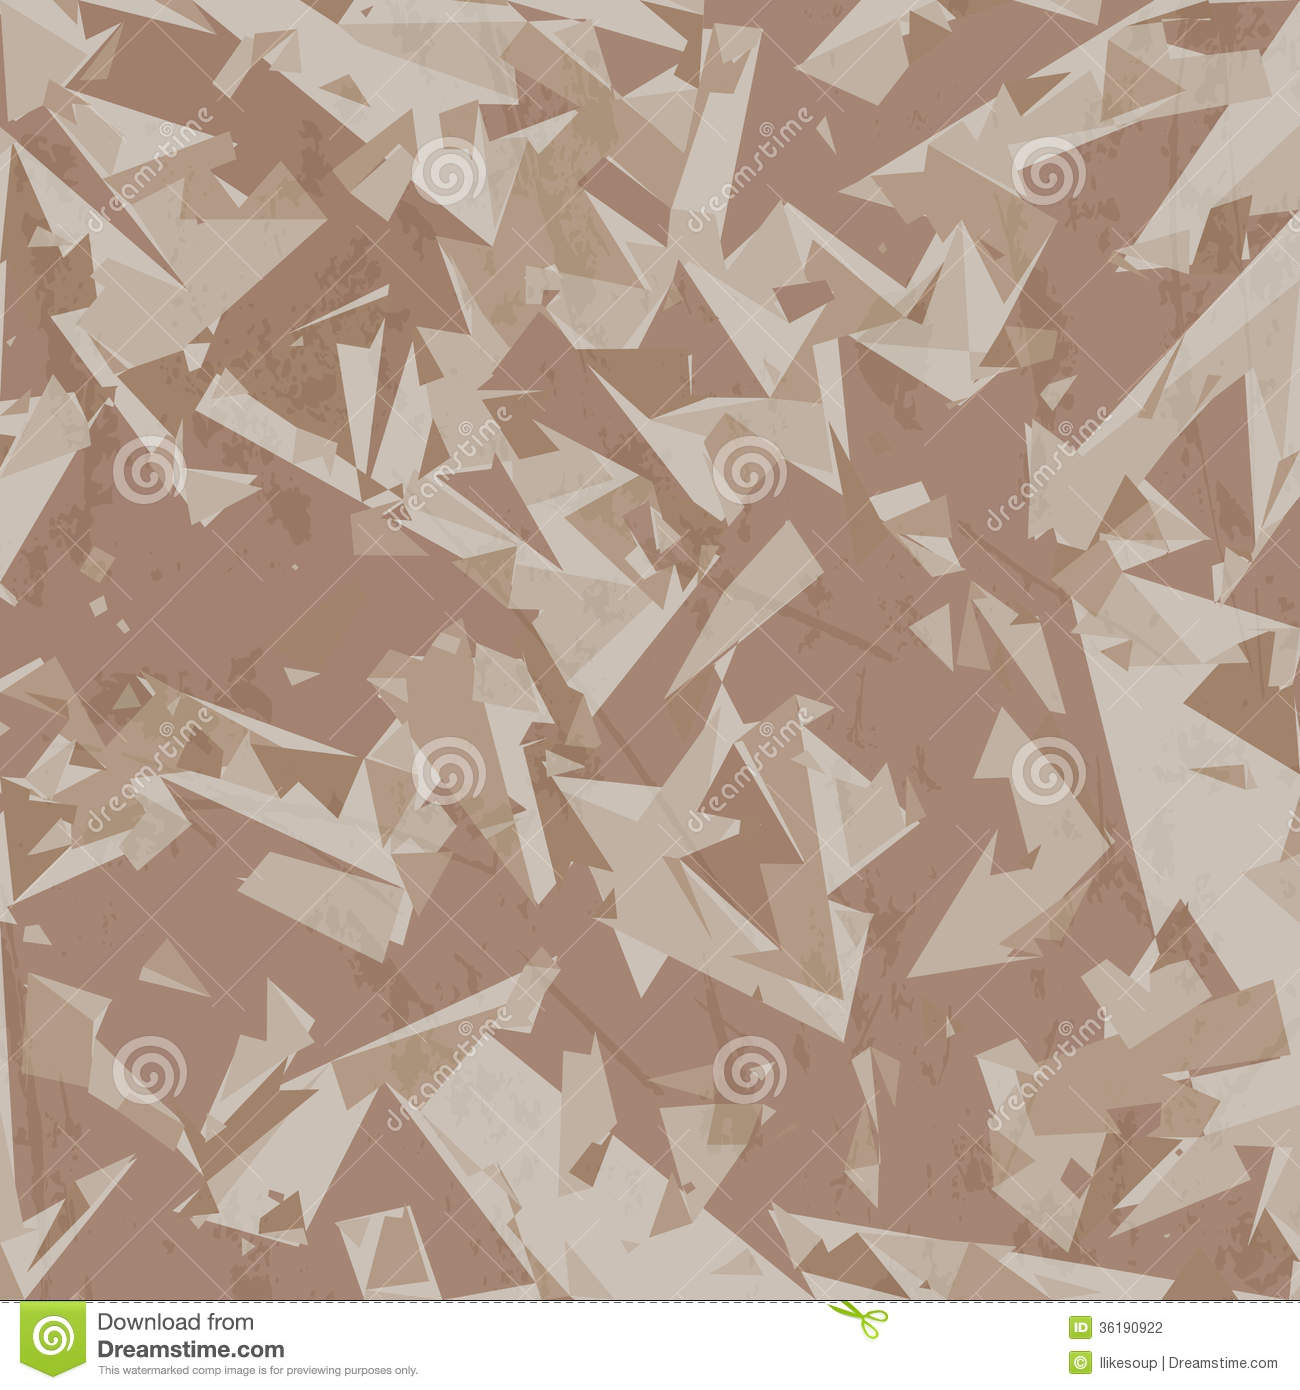 Vector Desert Camouflage Background Stock Vector ...